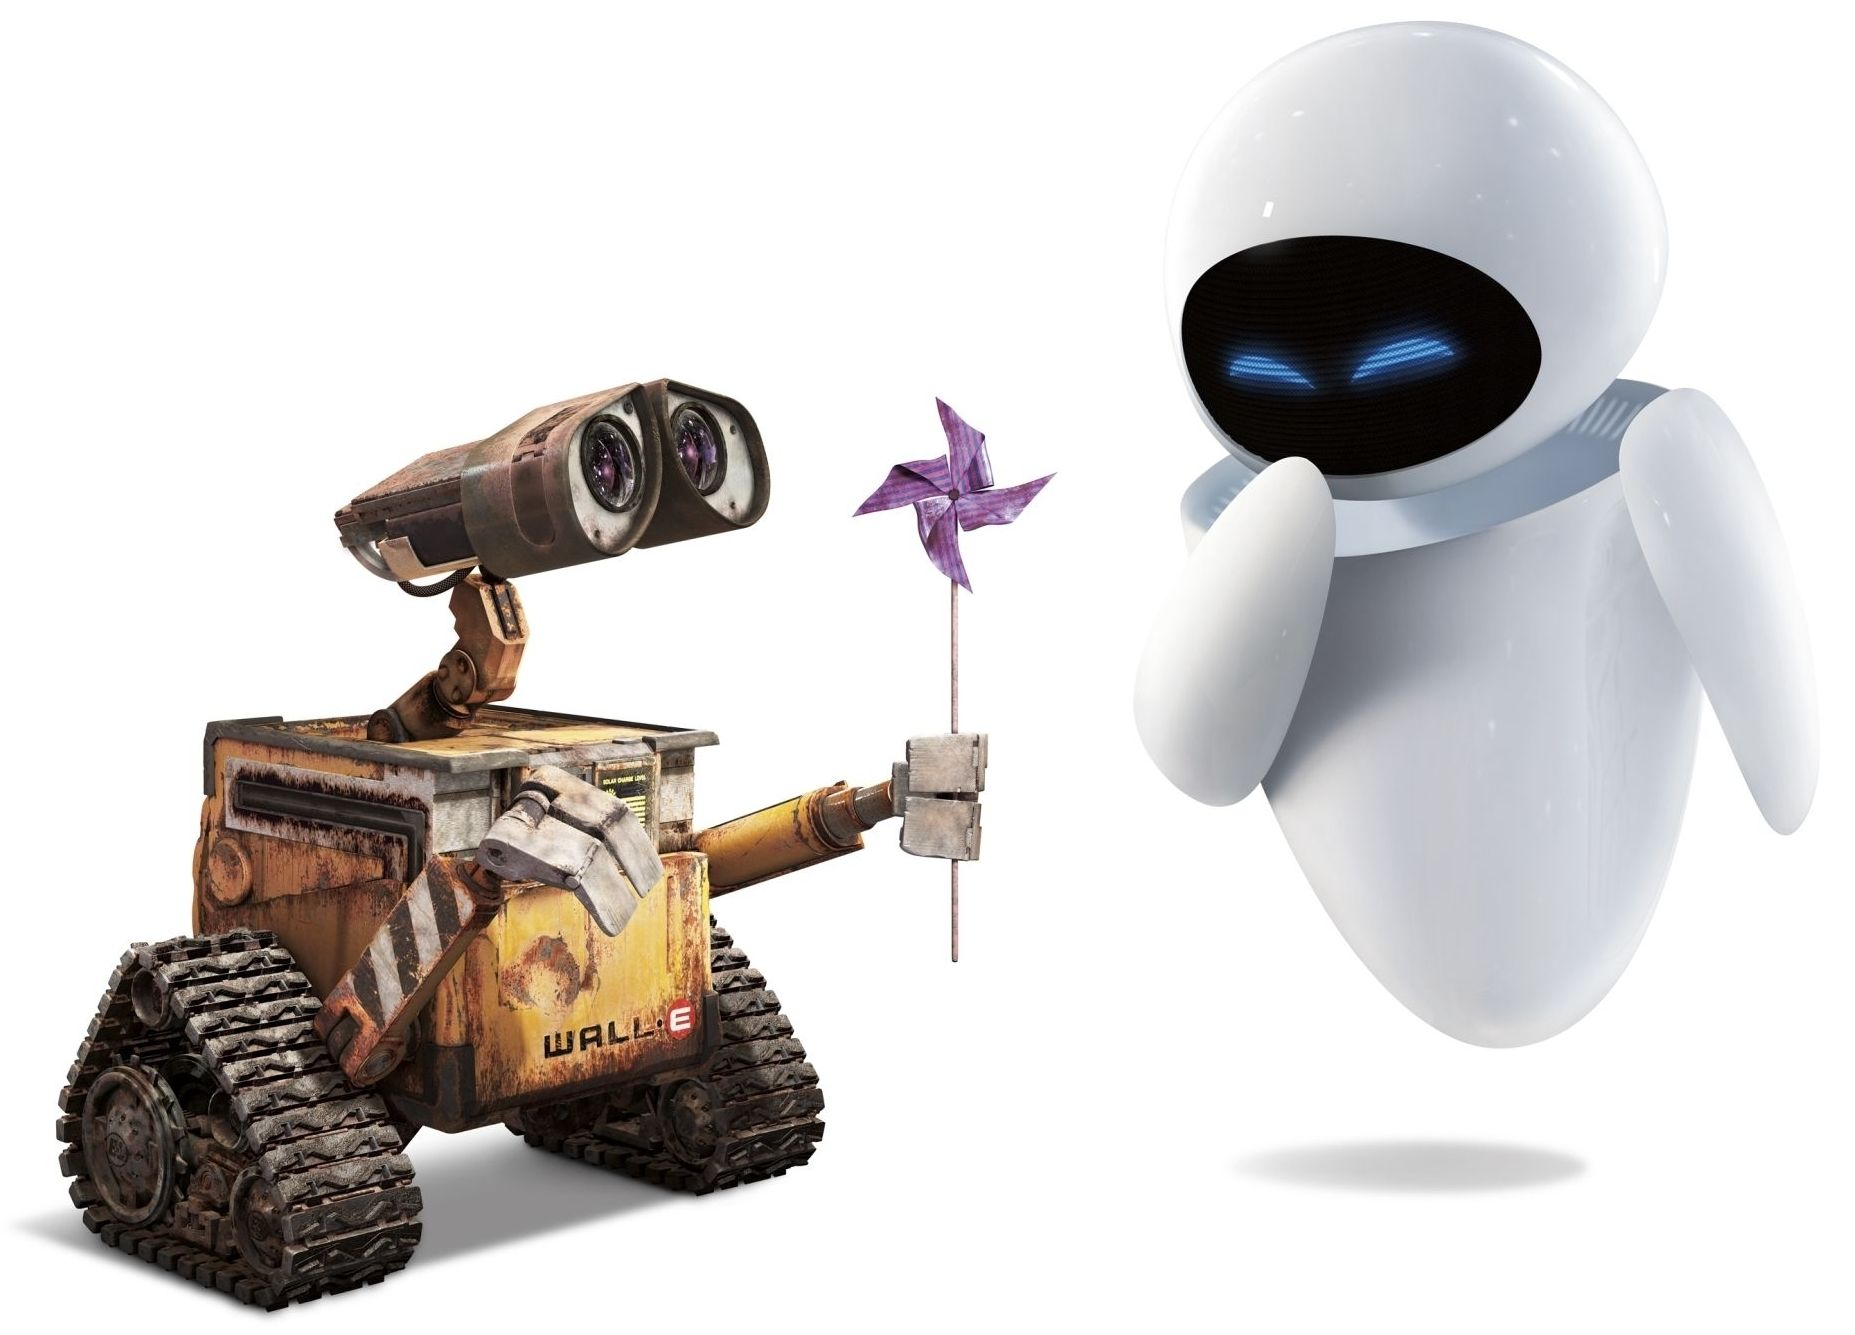 wall_e_and_eve_